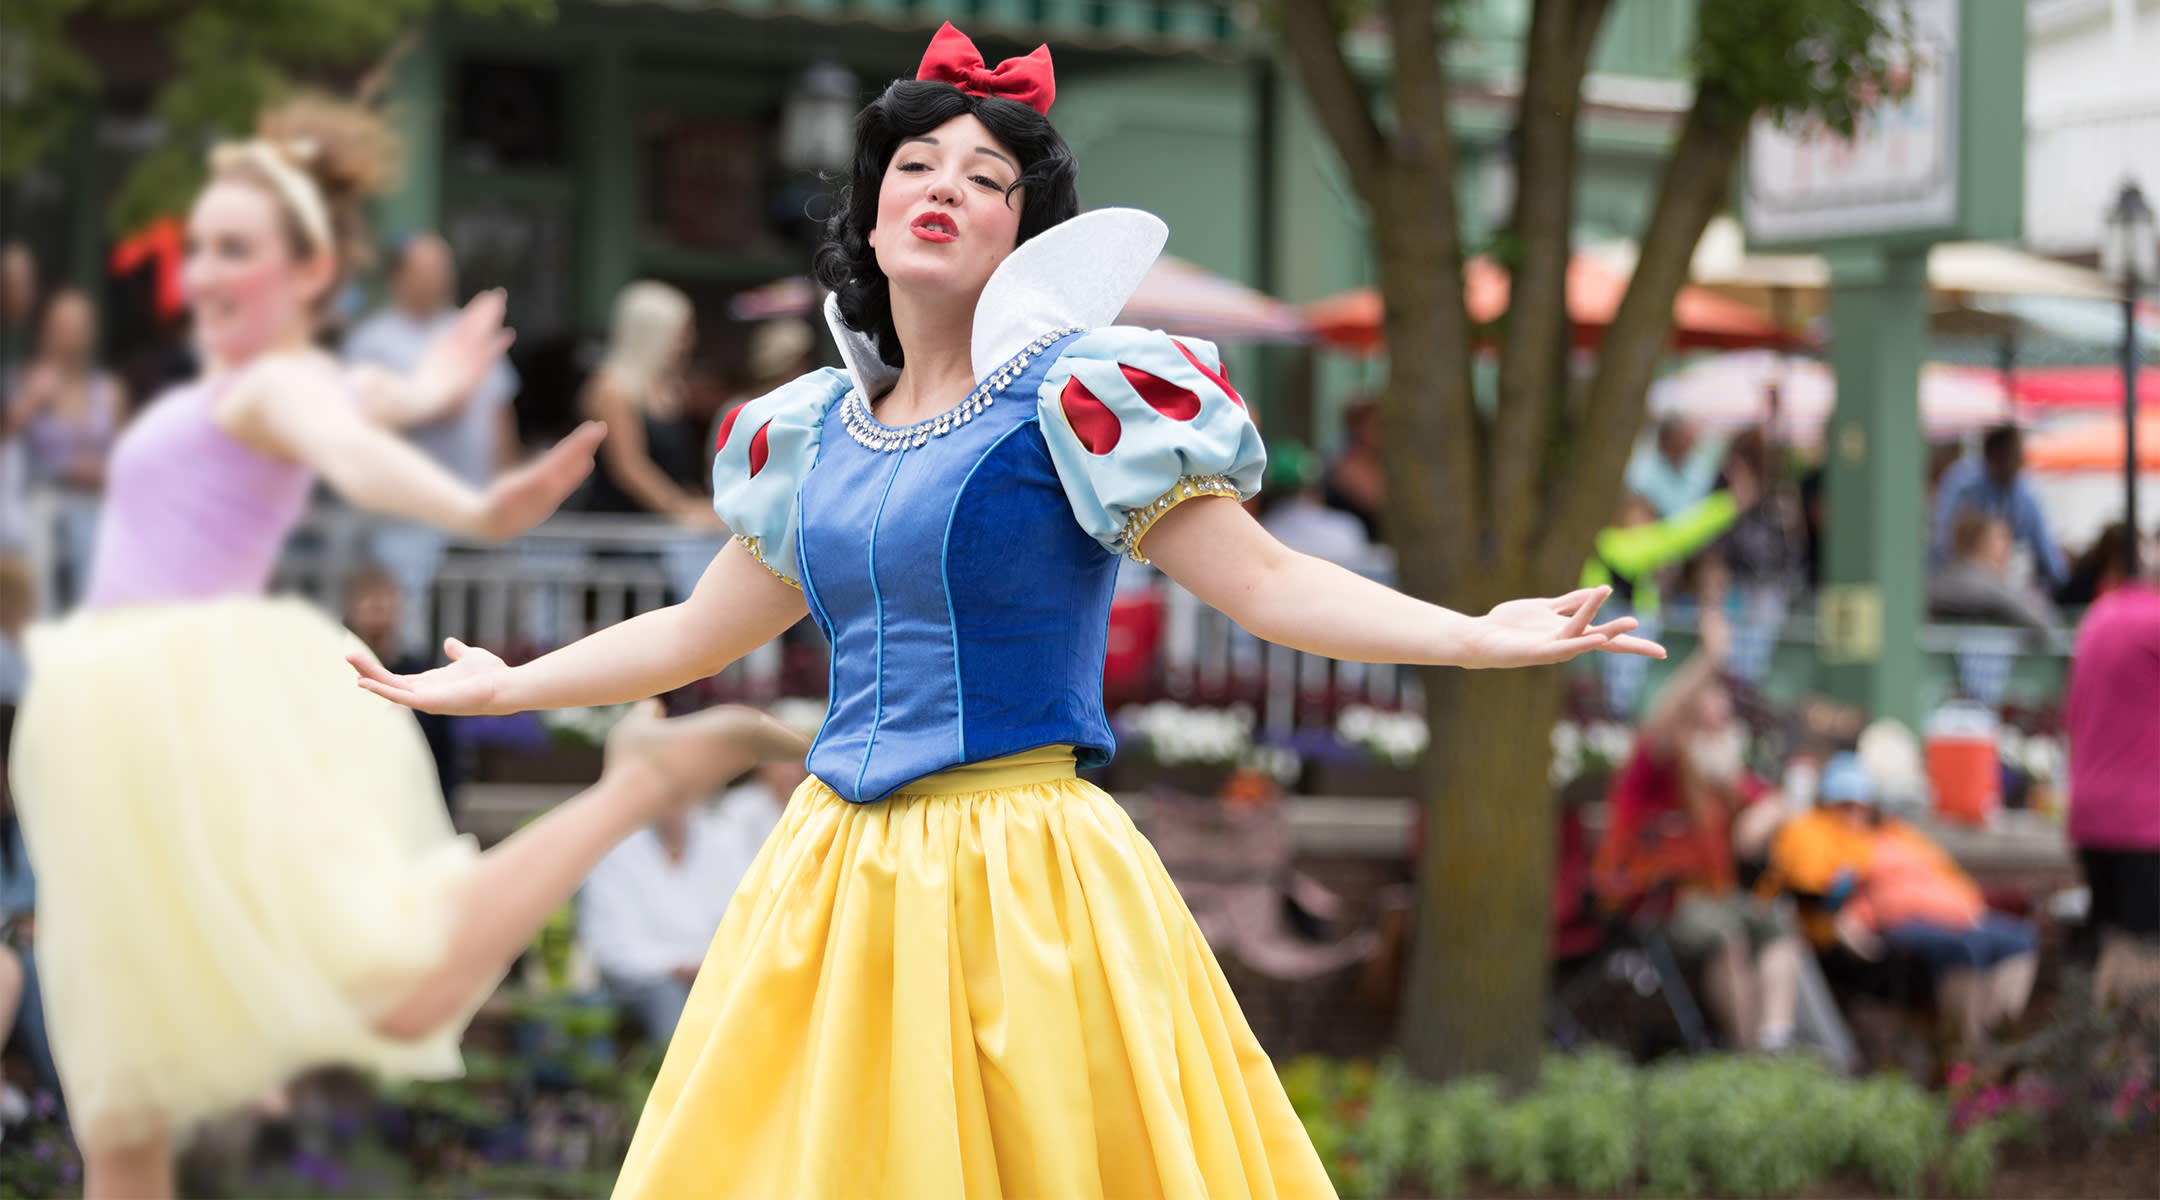 Snow White Soothing a Boy With Autism Has Restored Our Faith in Magic